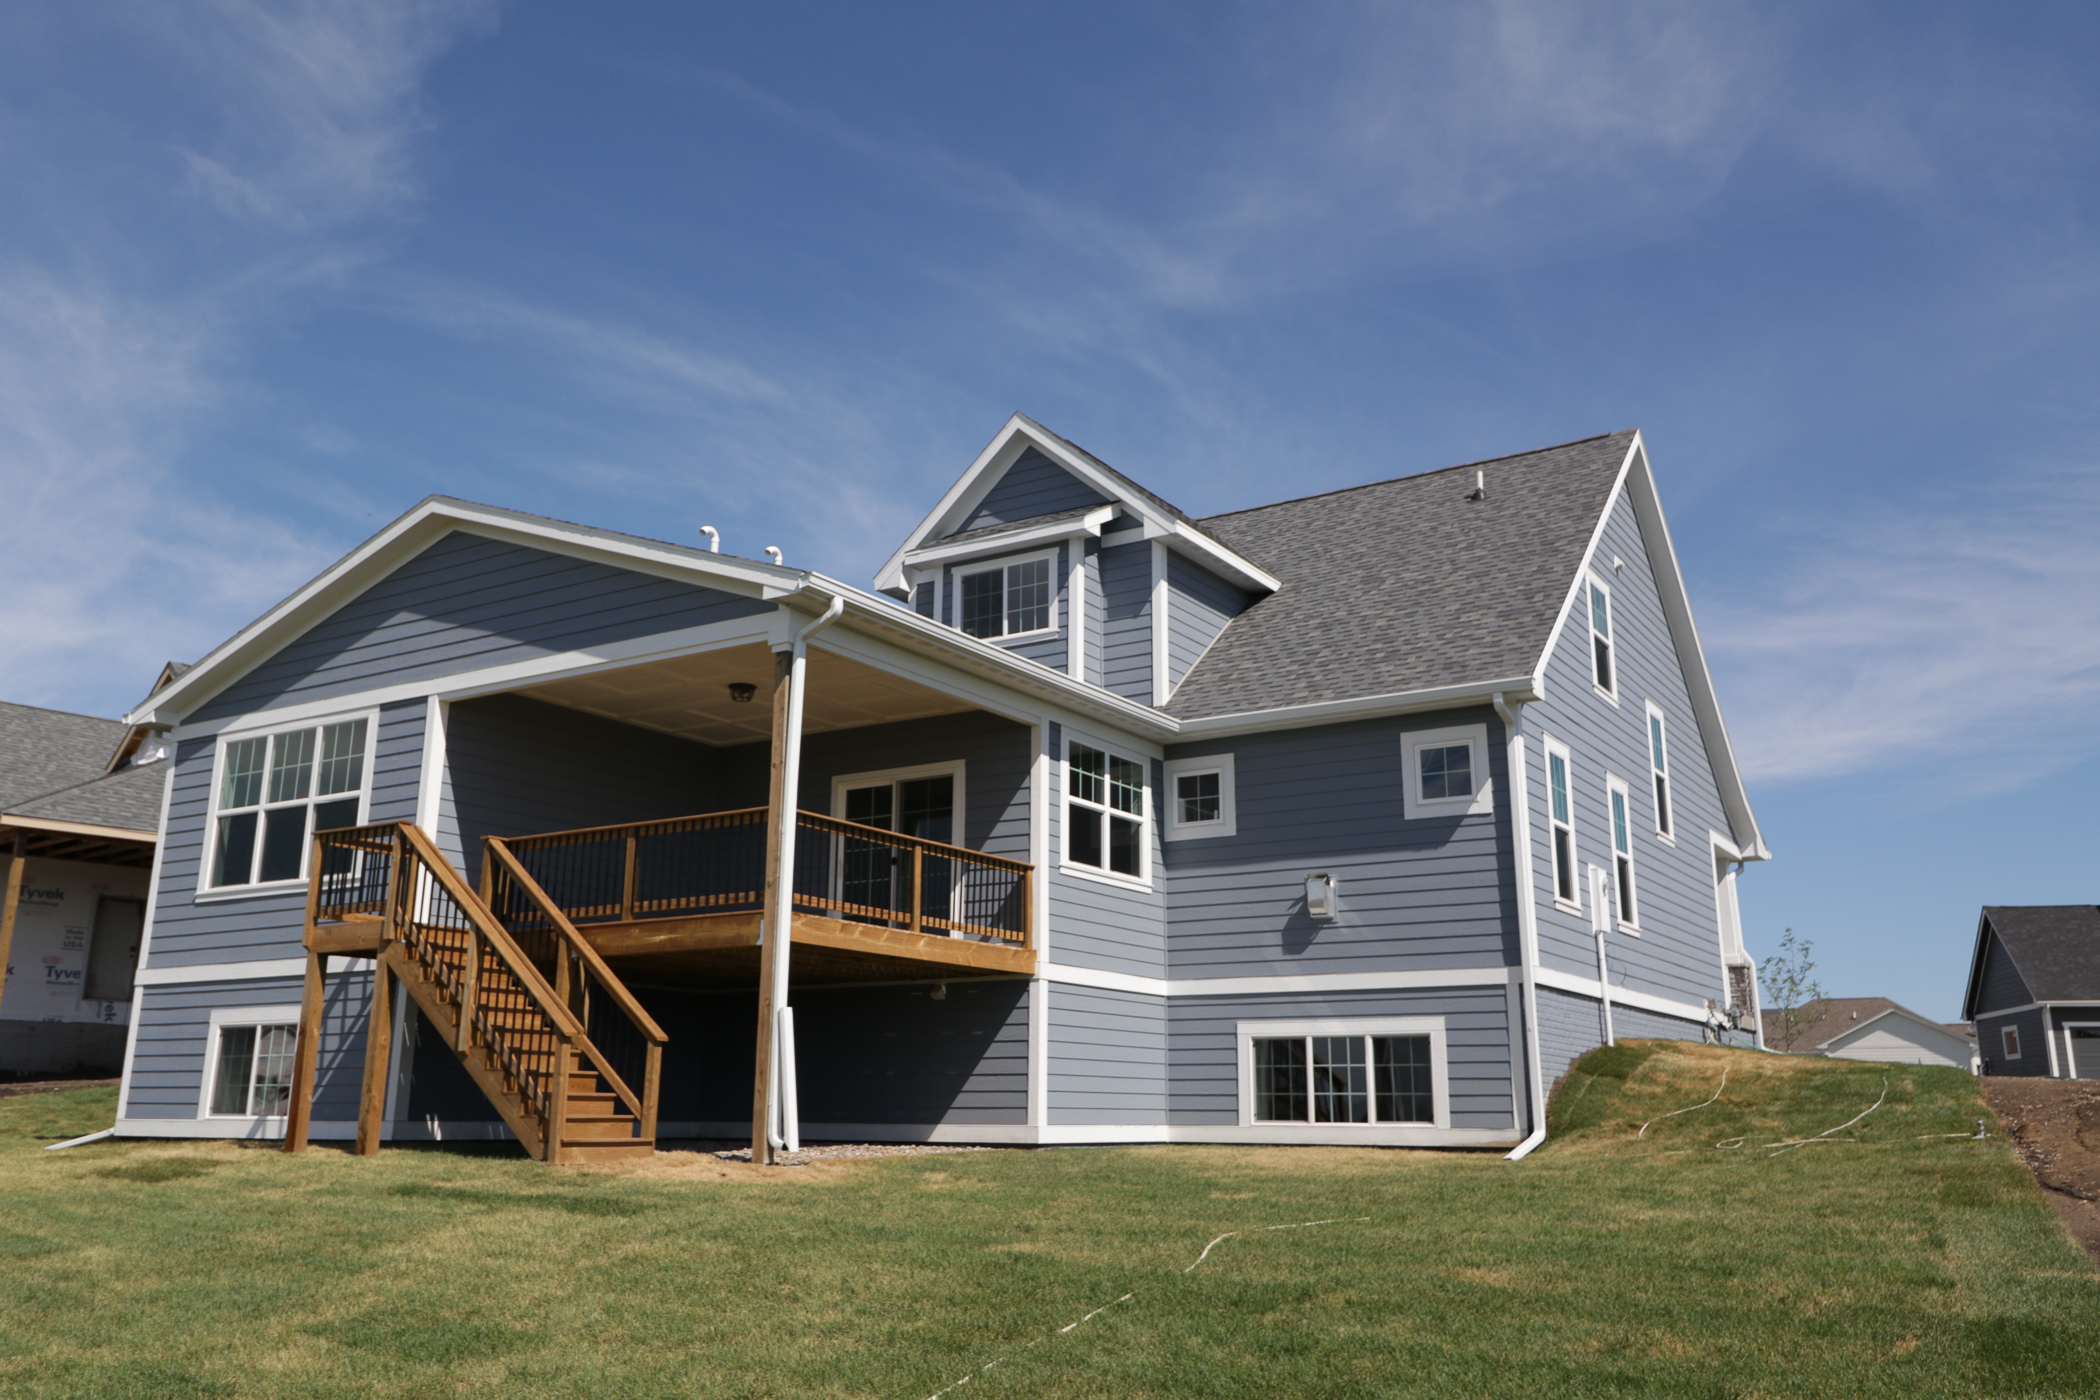 Build a custom home in Iowa, Top Rated Custom Home Builders, Home Builders in Central Iowa